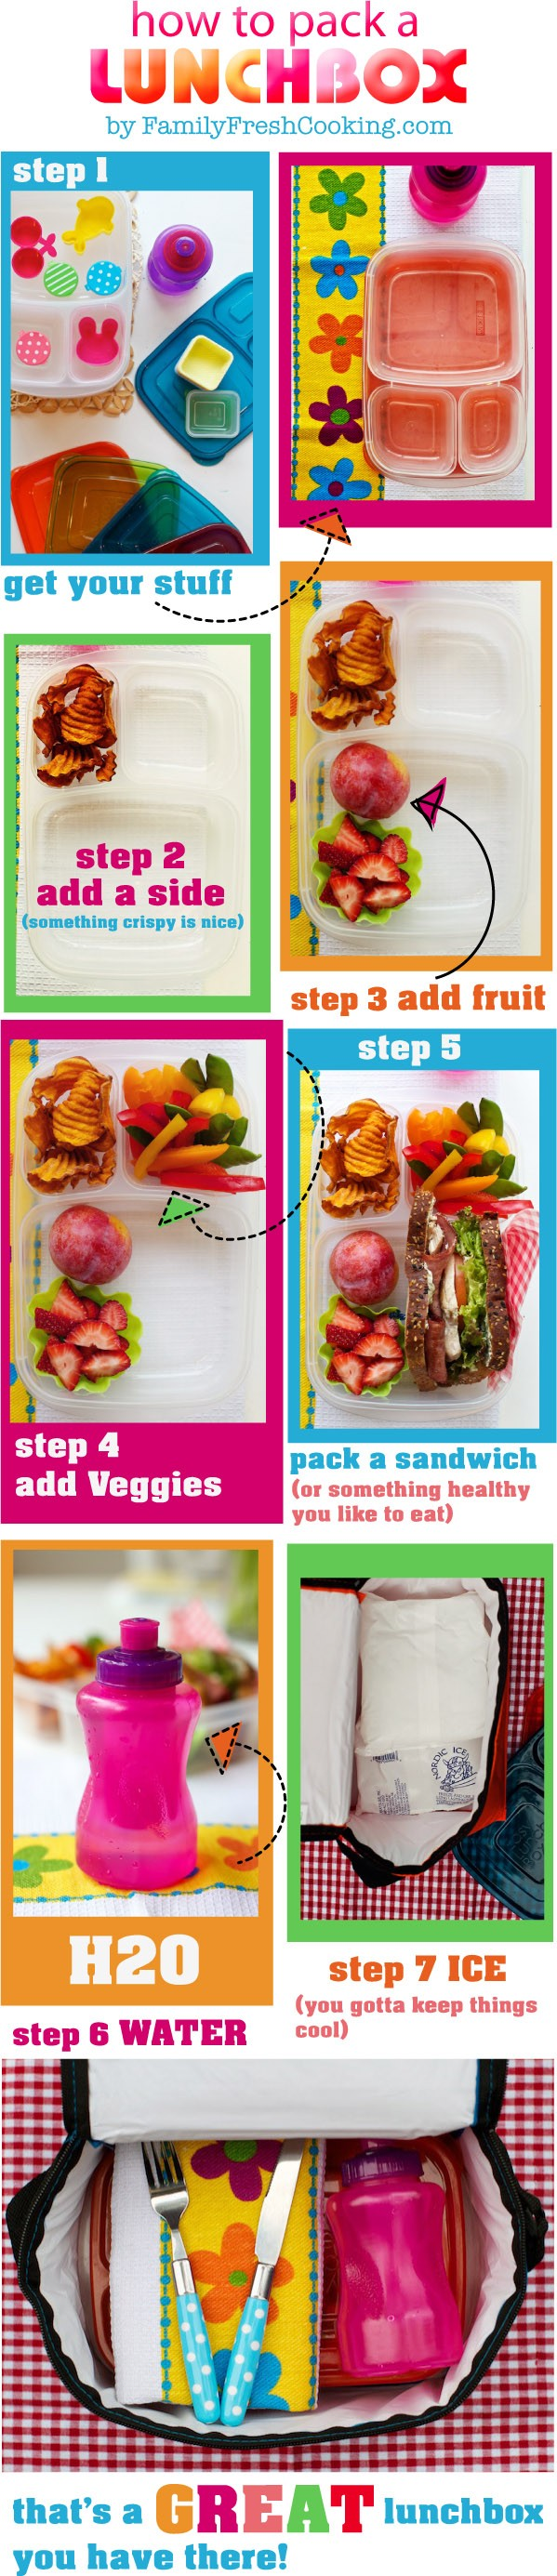 How to pack a lunch box on MarlaMeridith.com